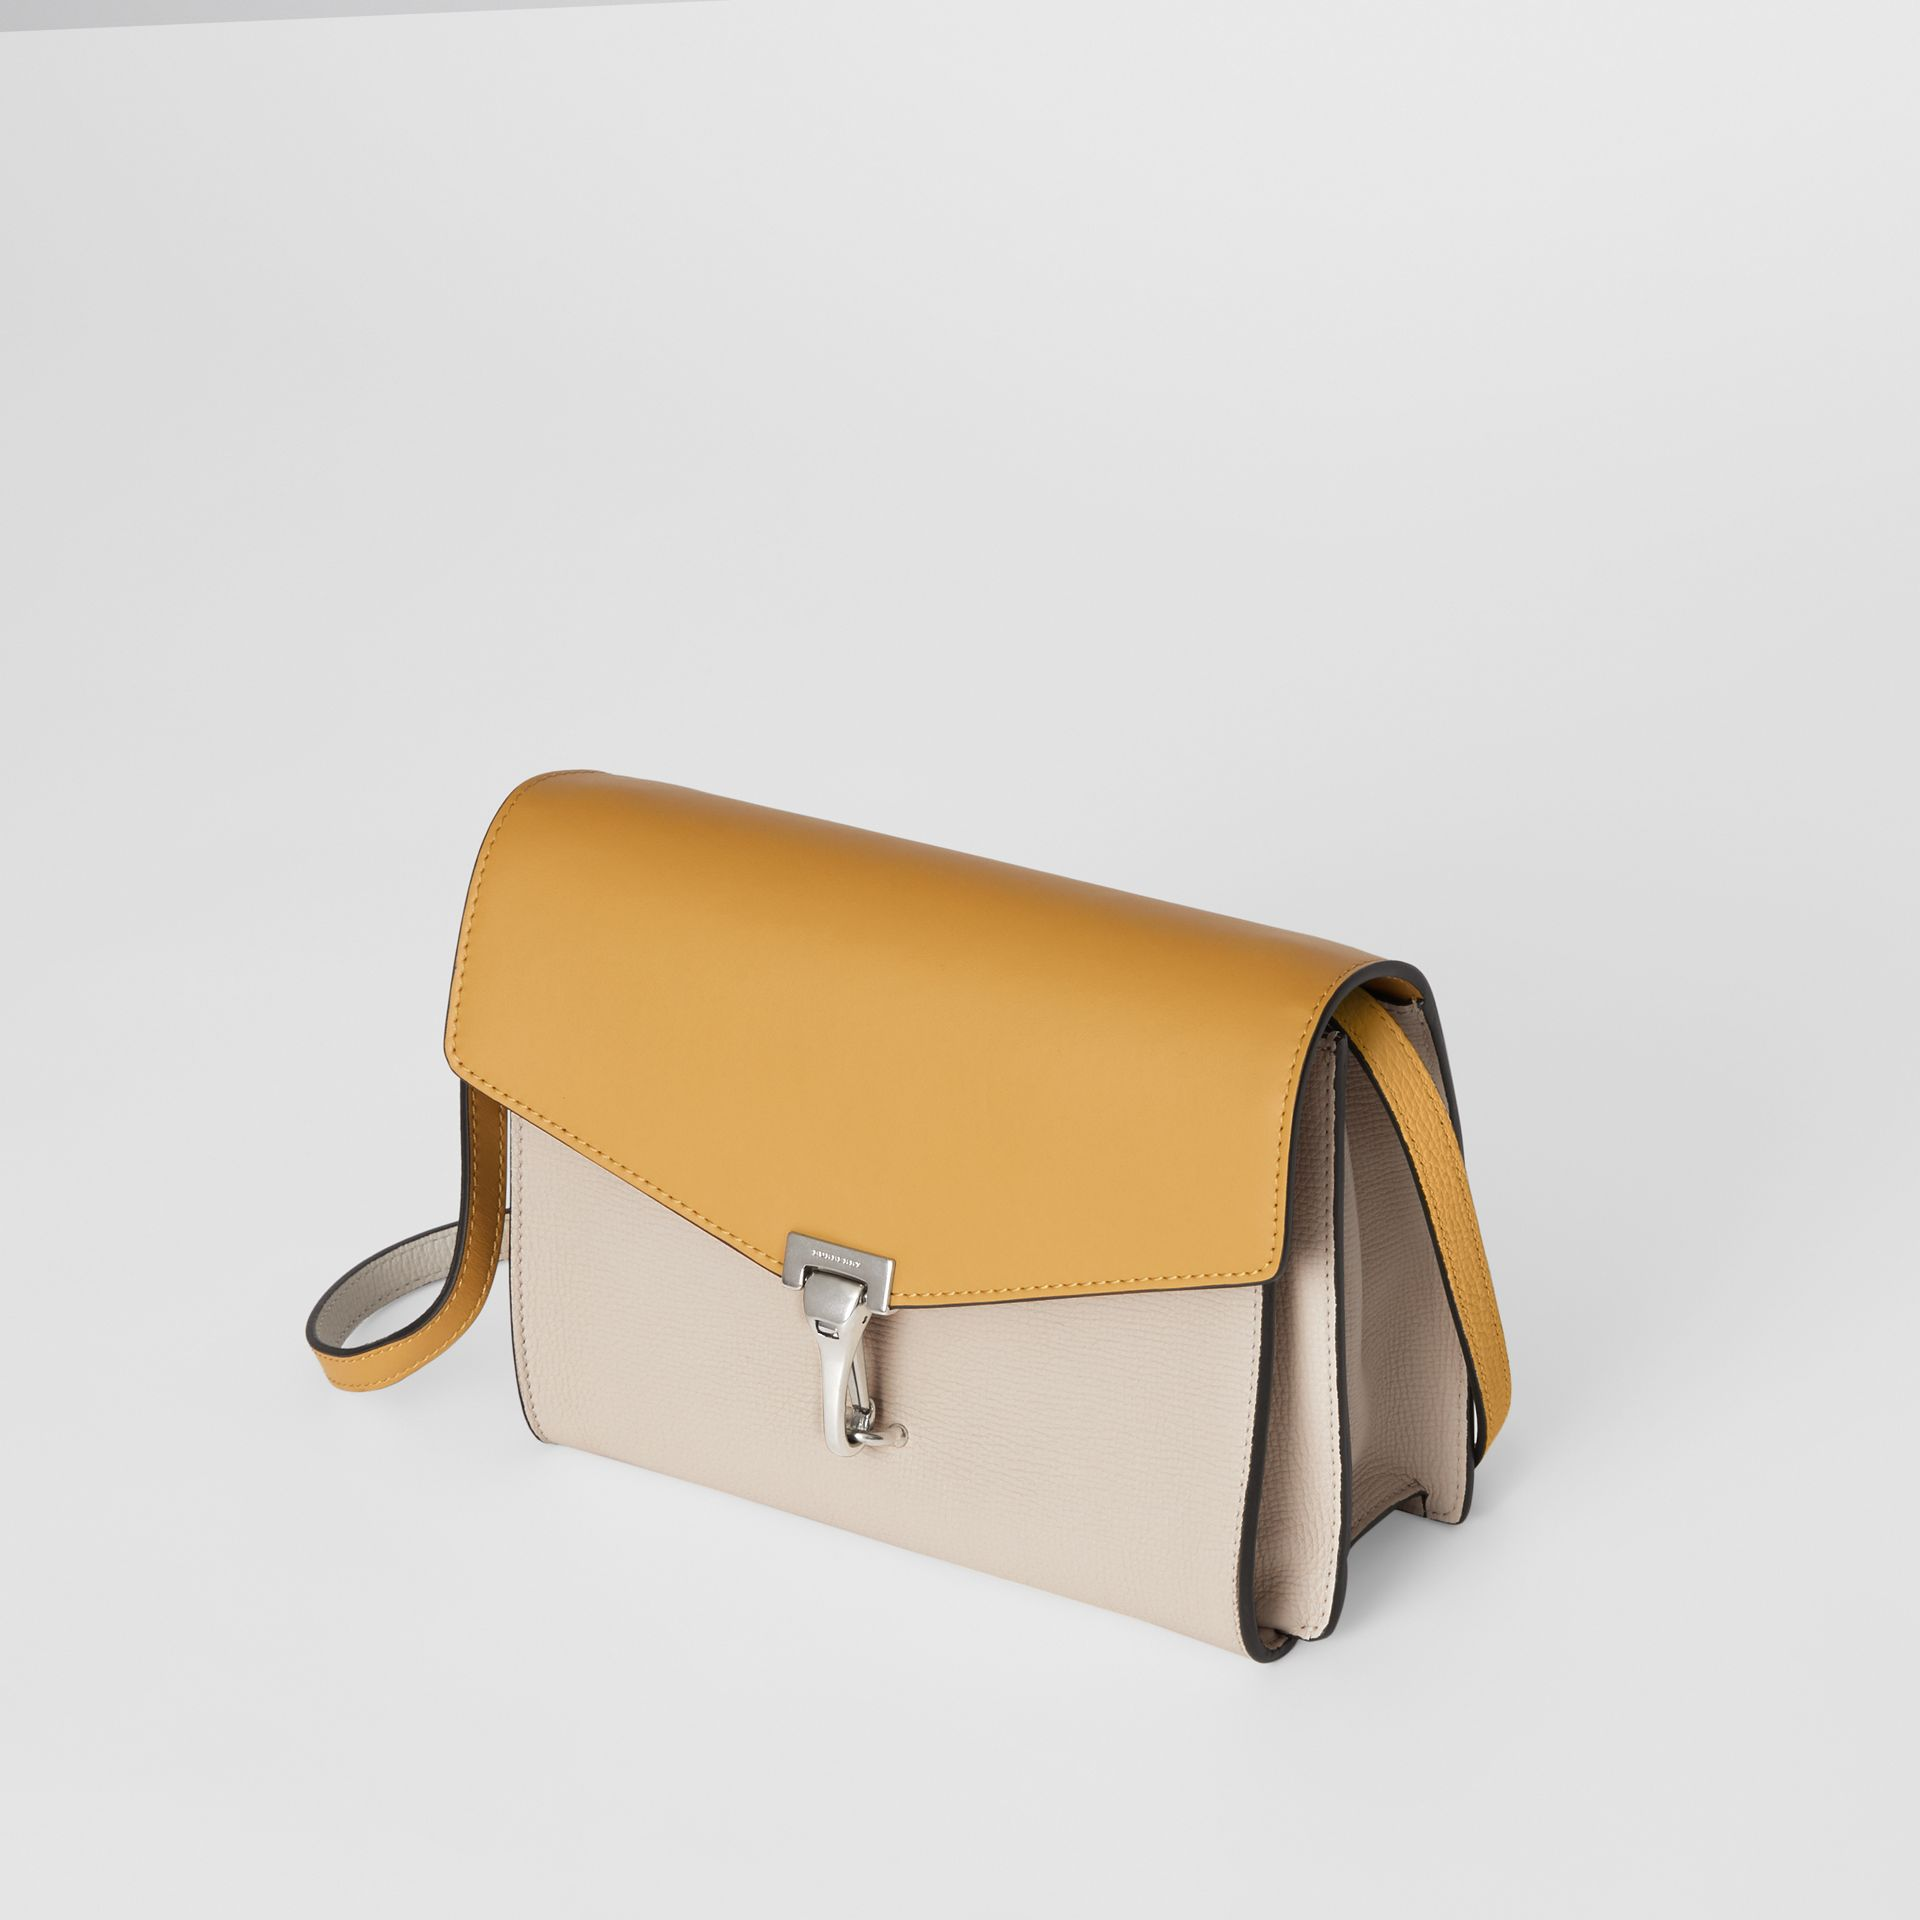 Two-tone Leather Crossbody Bag in Limestone/cornflower Yellow - Women | Burberry United Kingdom - gallery image 4